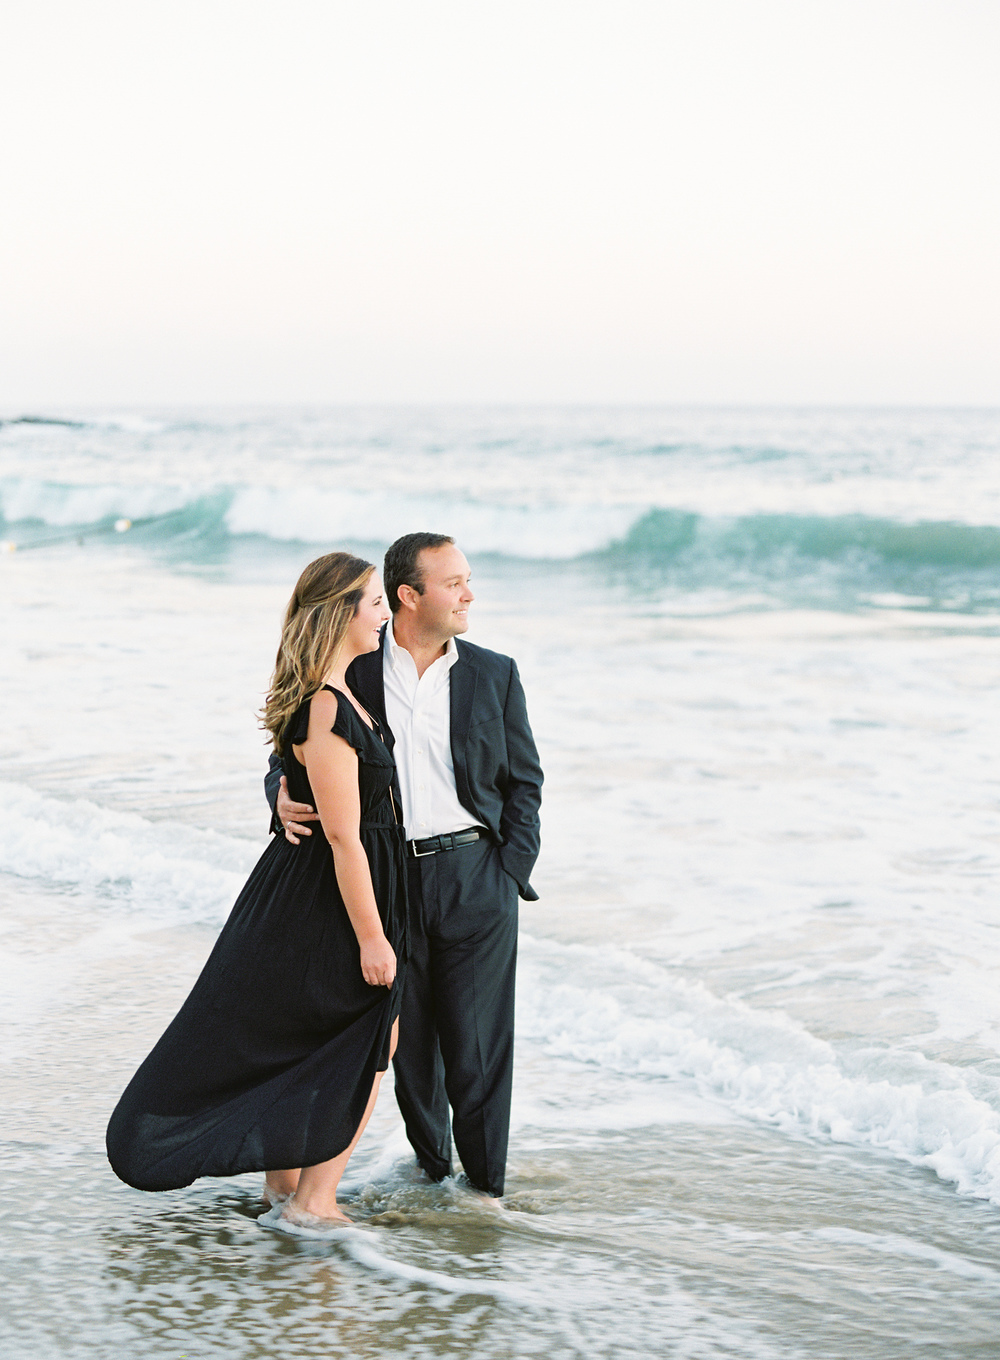 Laguna-Beach-Engagement-Film-Wedding-Orange-County-114.jpg